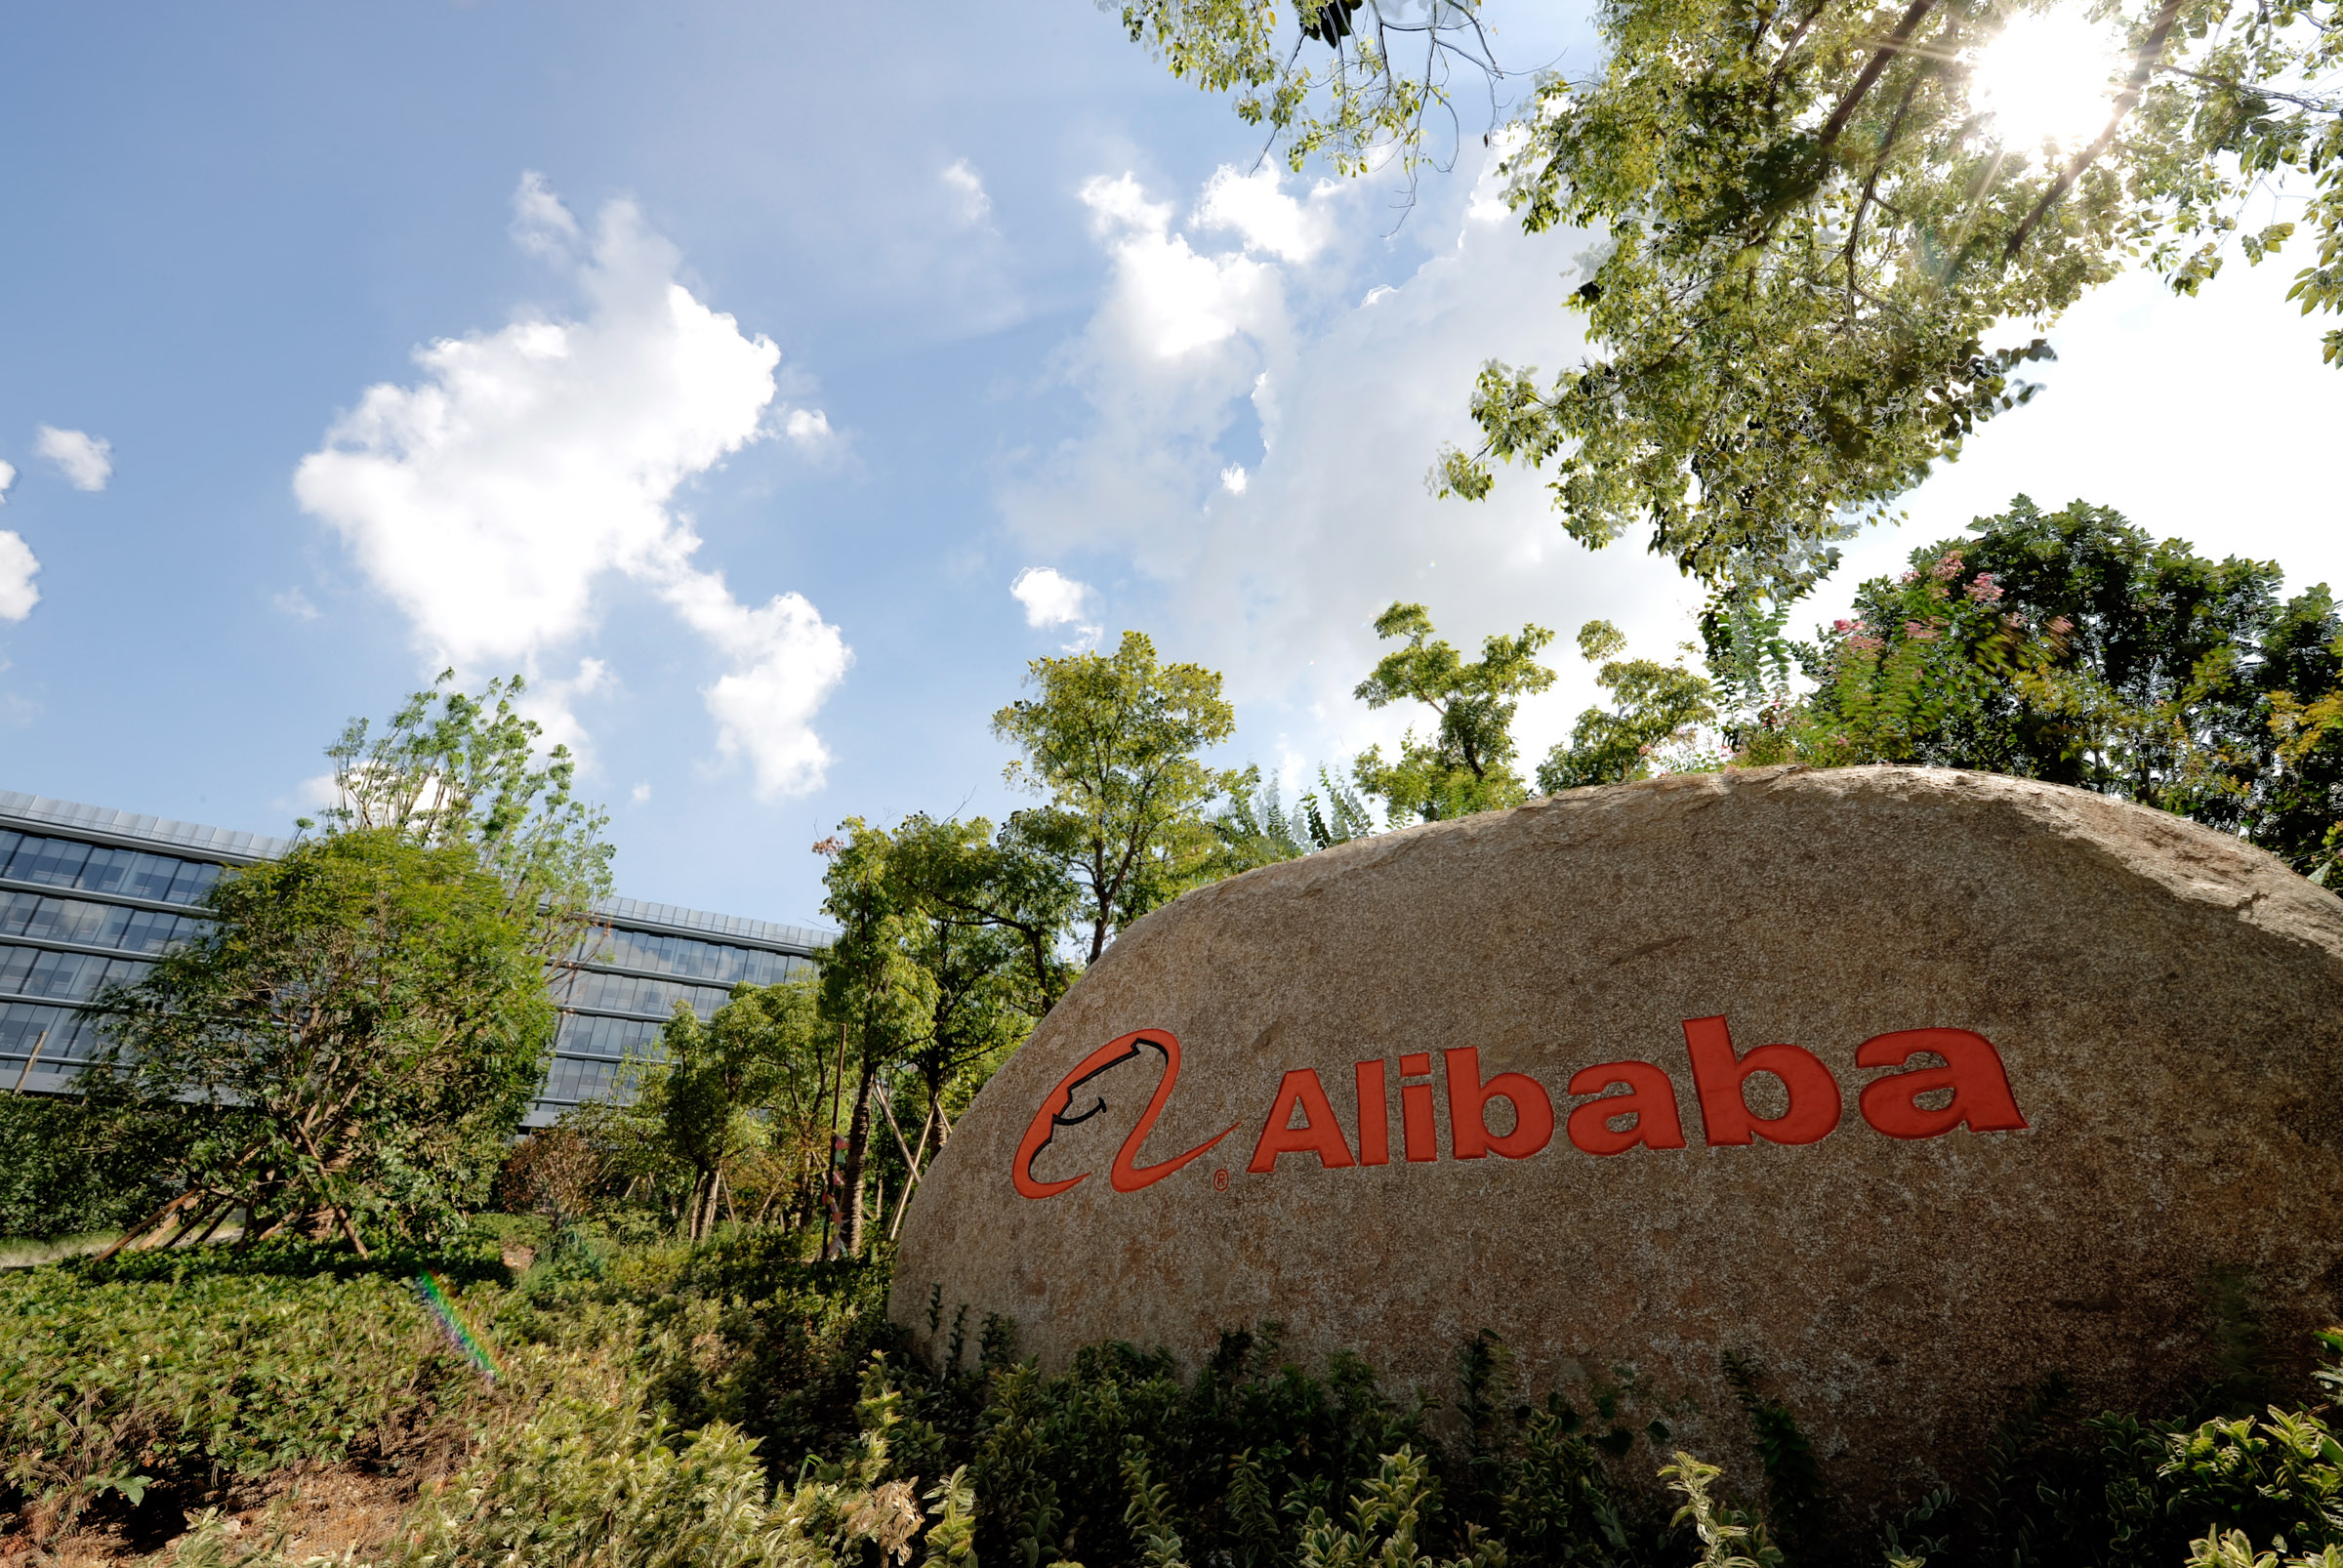 Alibaba's A100 Showcases It As A Platform Company